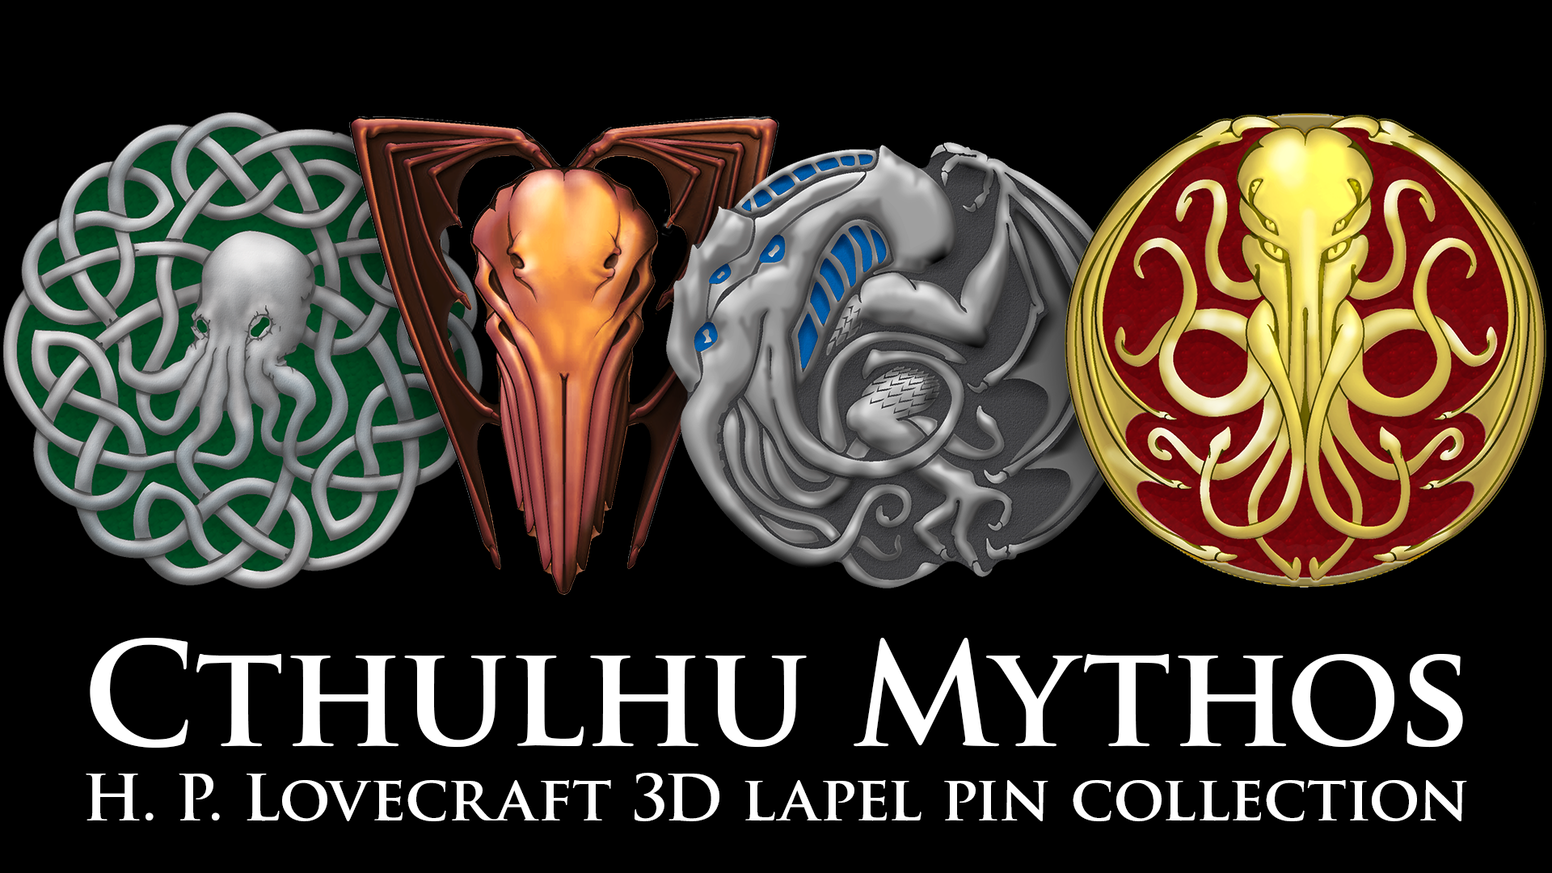 6 Original Cthulhu, Miskatonic, & Yellow Sign designs as deluxe lapel pins, to signal your cultist pride in the foremost Great Old One.